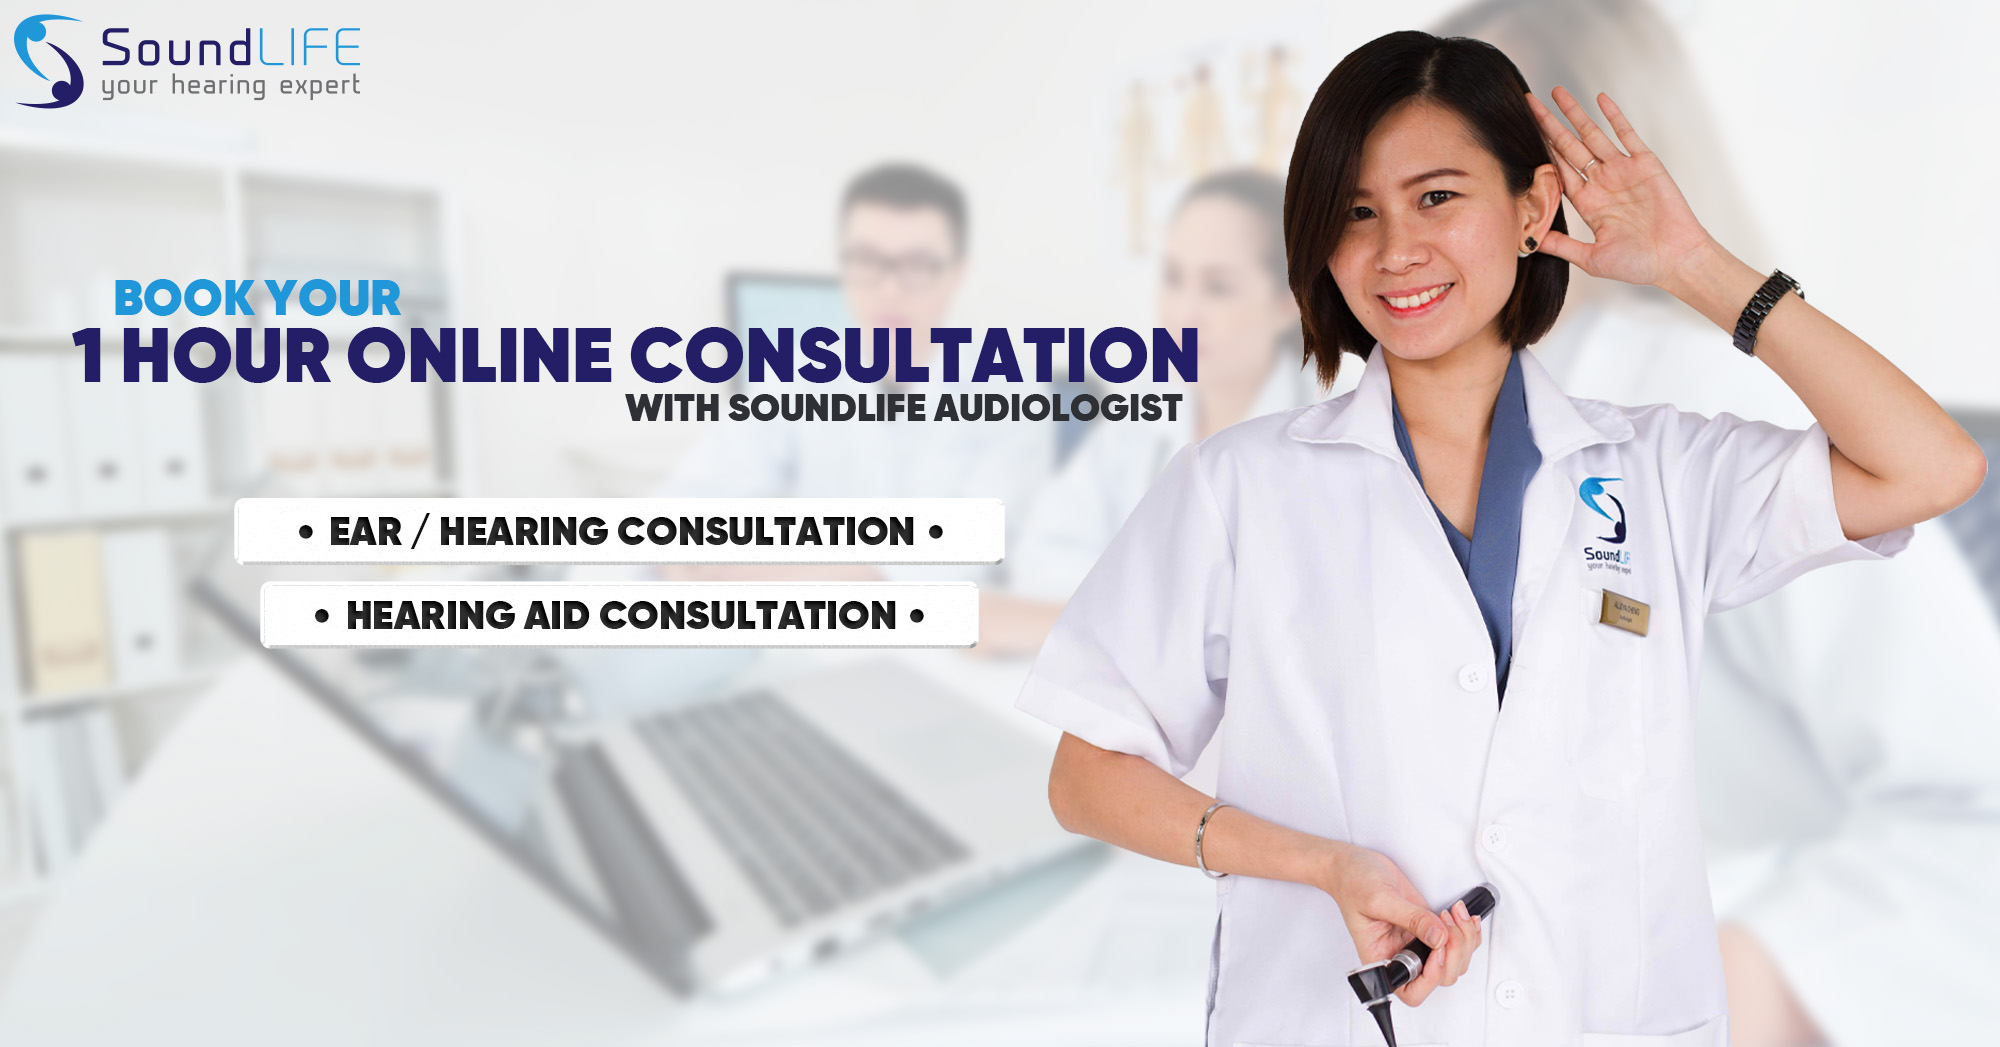 Soundlife Free 1 Hour Online Consultation On Your Hearing